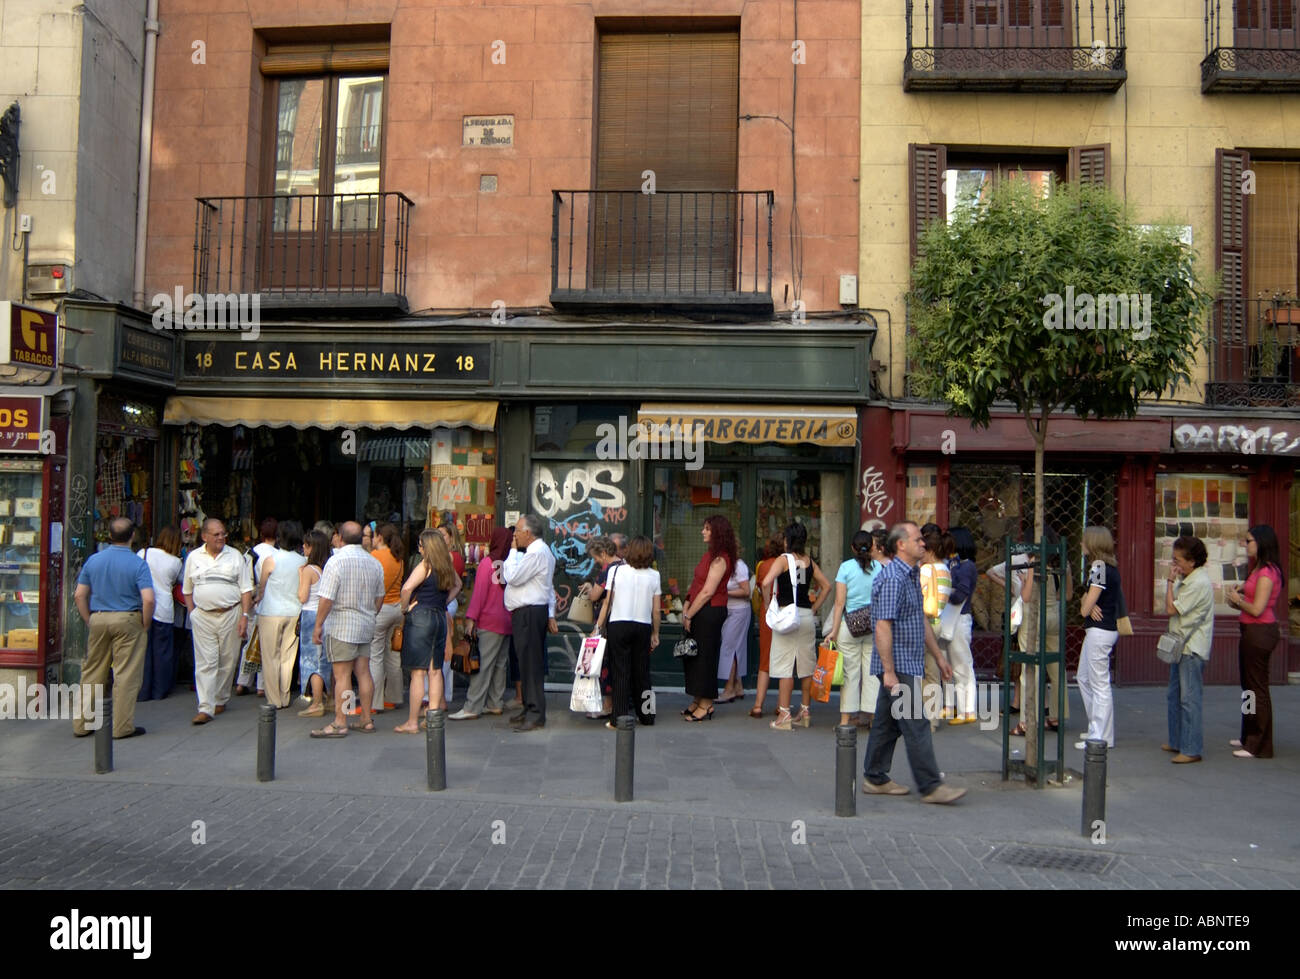 People queue outside calle toledo n 18 casa hernanz - Casa hernanz madrid ...